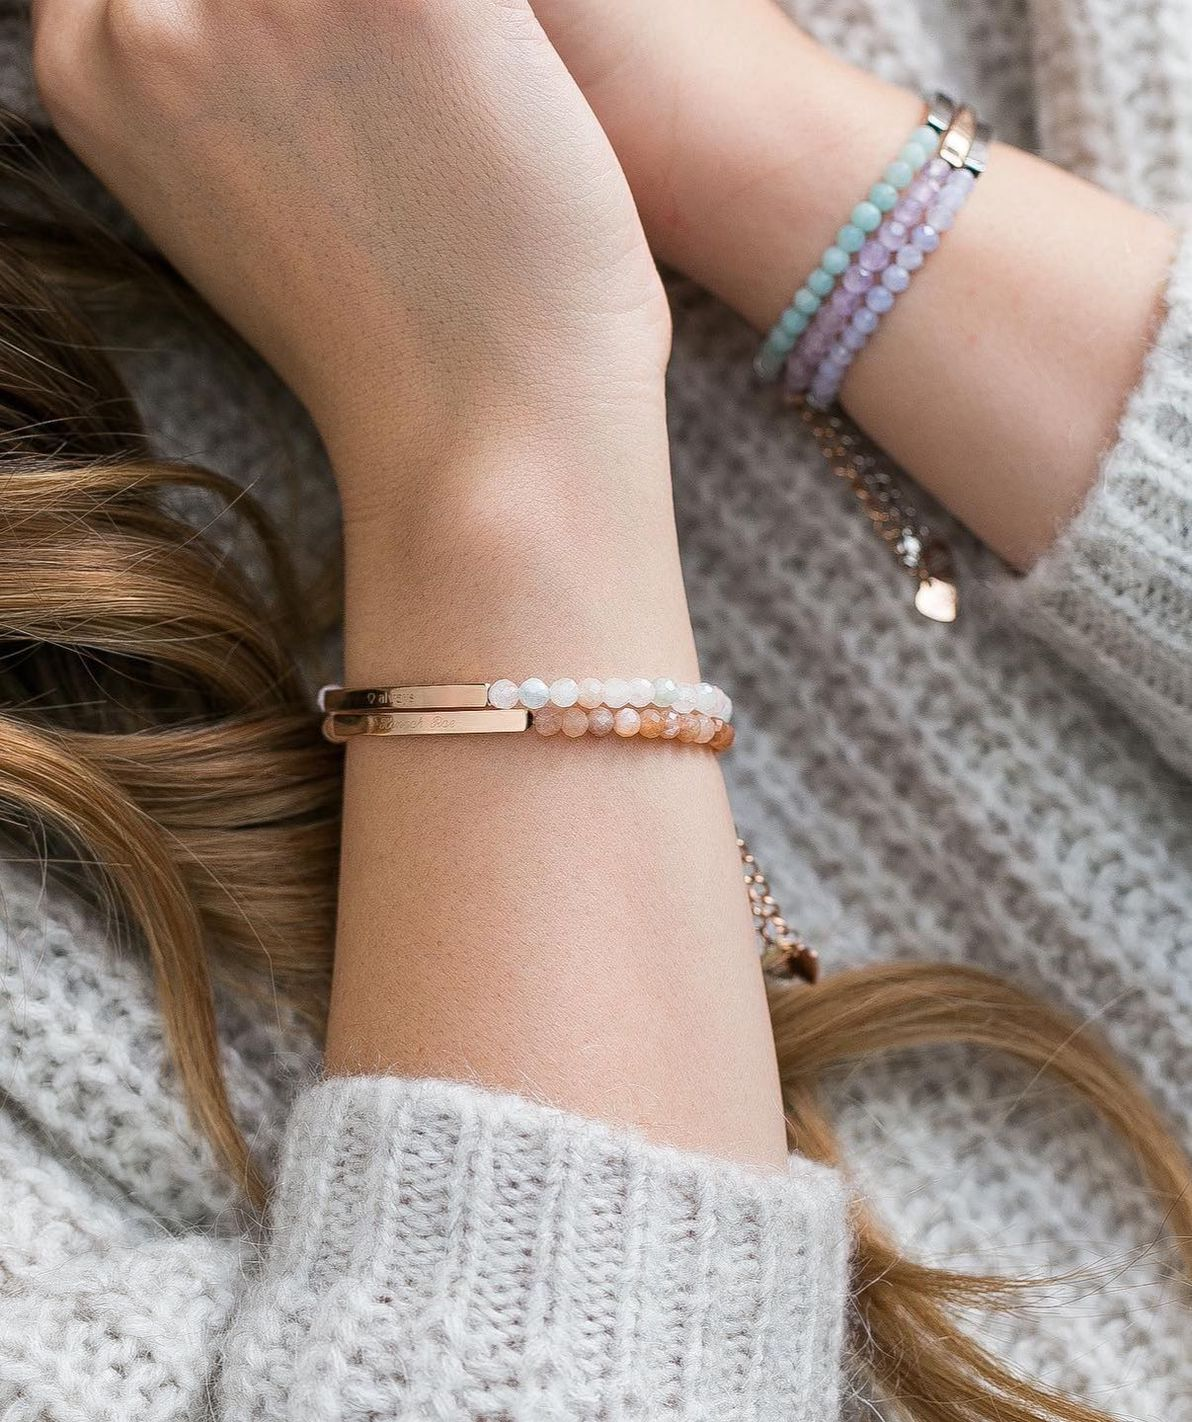 Shop Local: 7 Homegrown Jewellery Brands to Support in Singapore